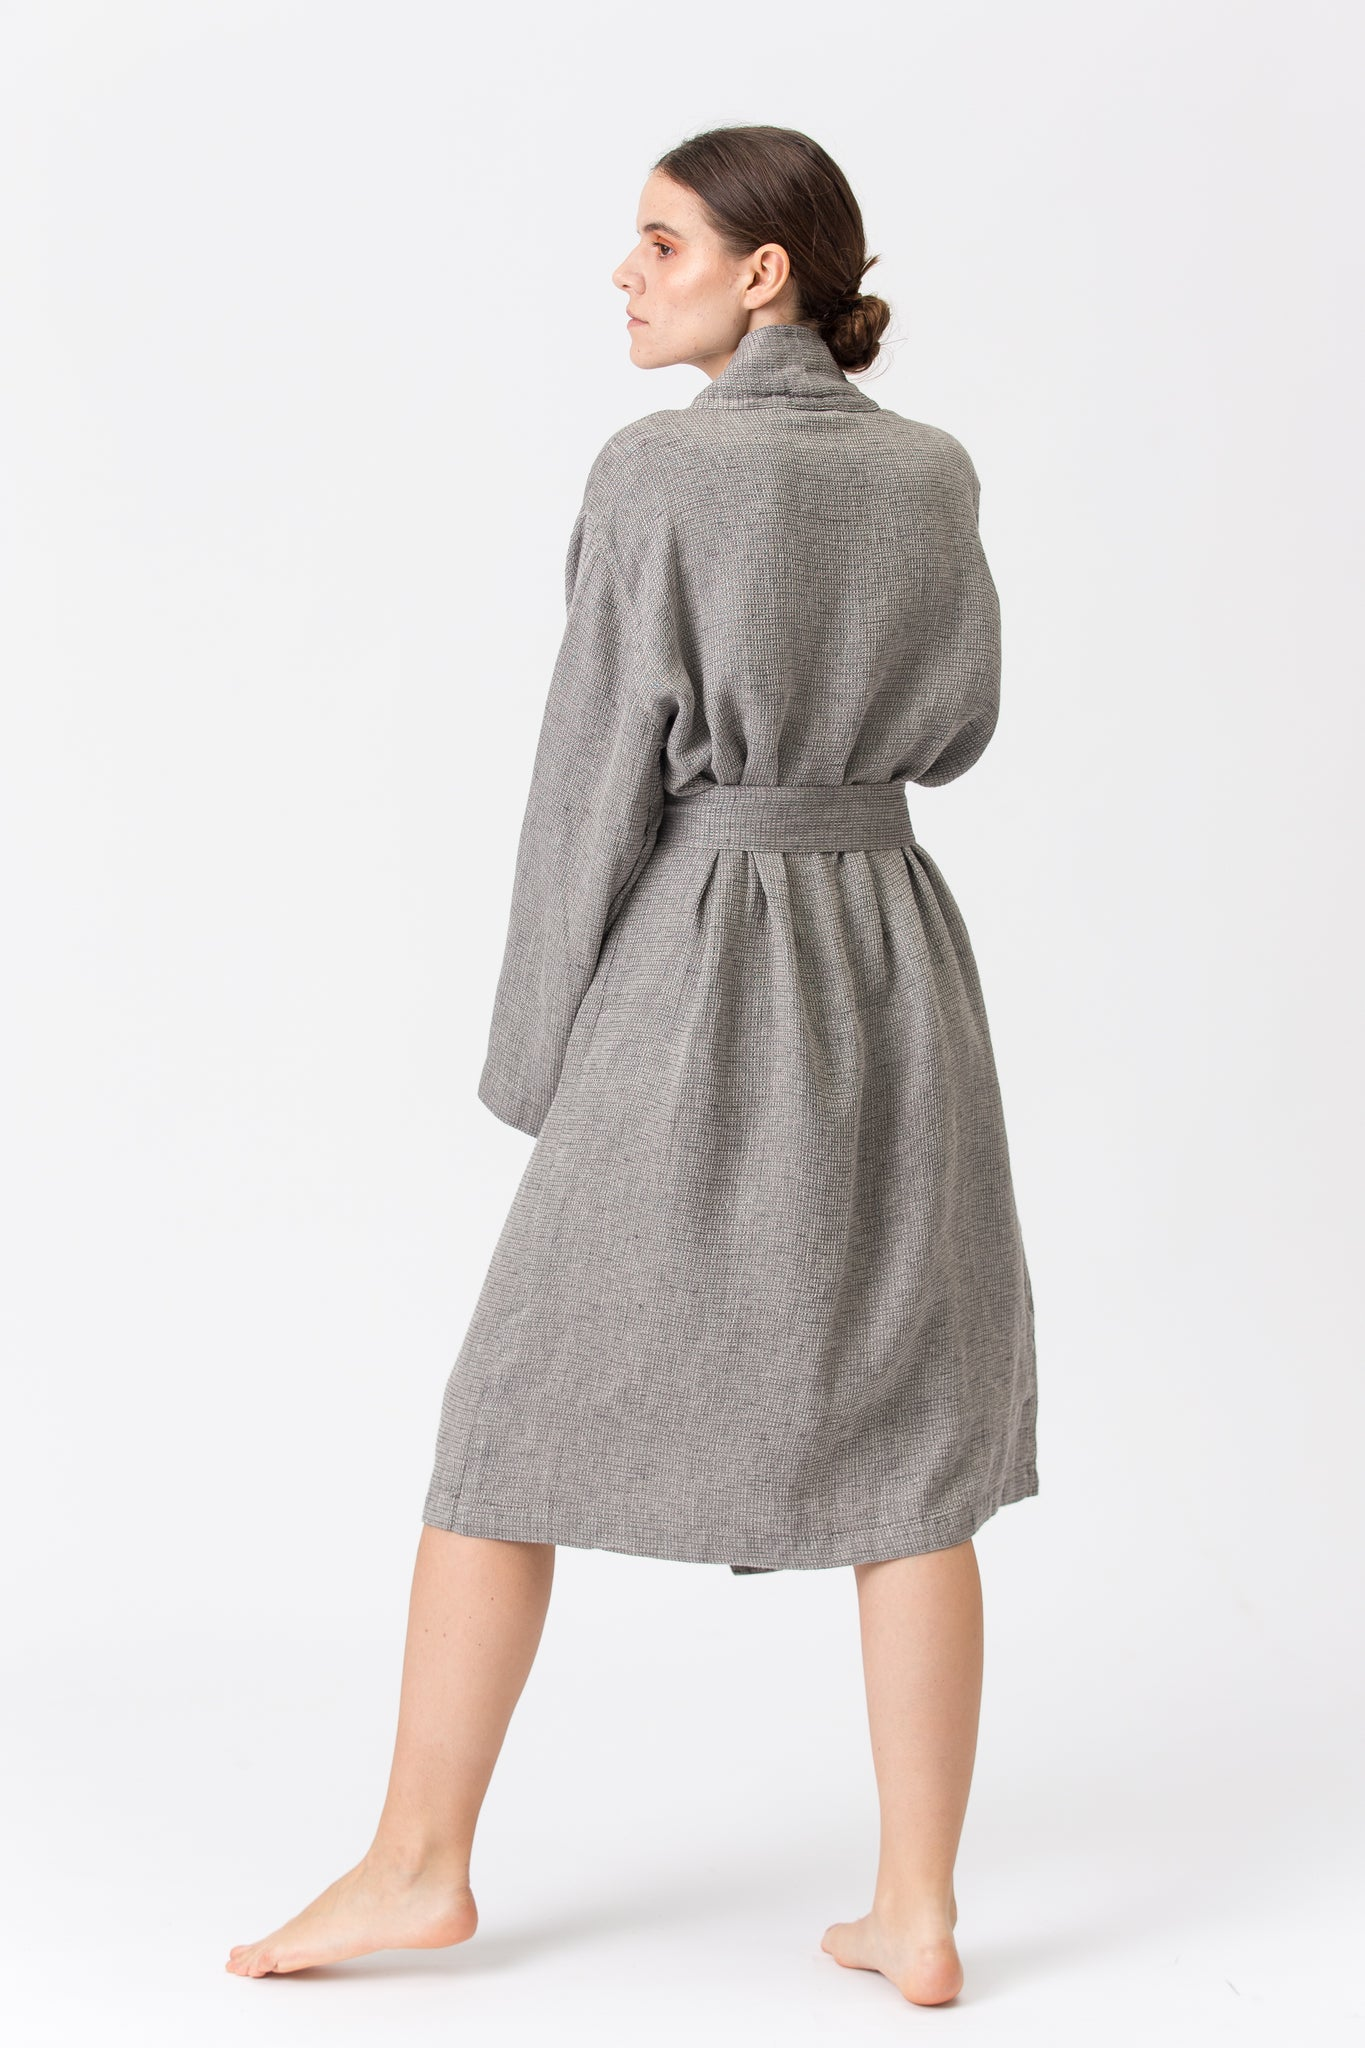 Linen Kimono-Bathrobe SMILTĖ graphite grey